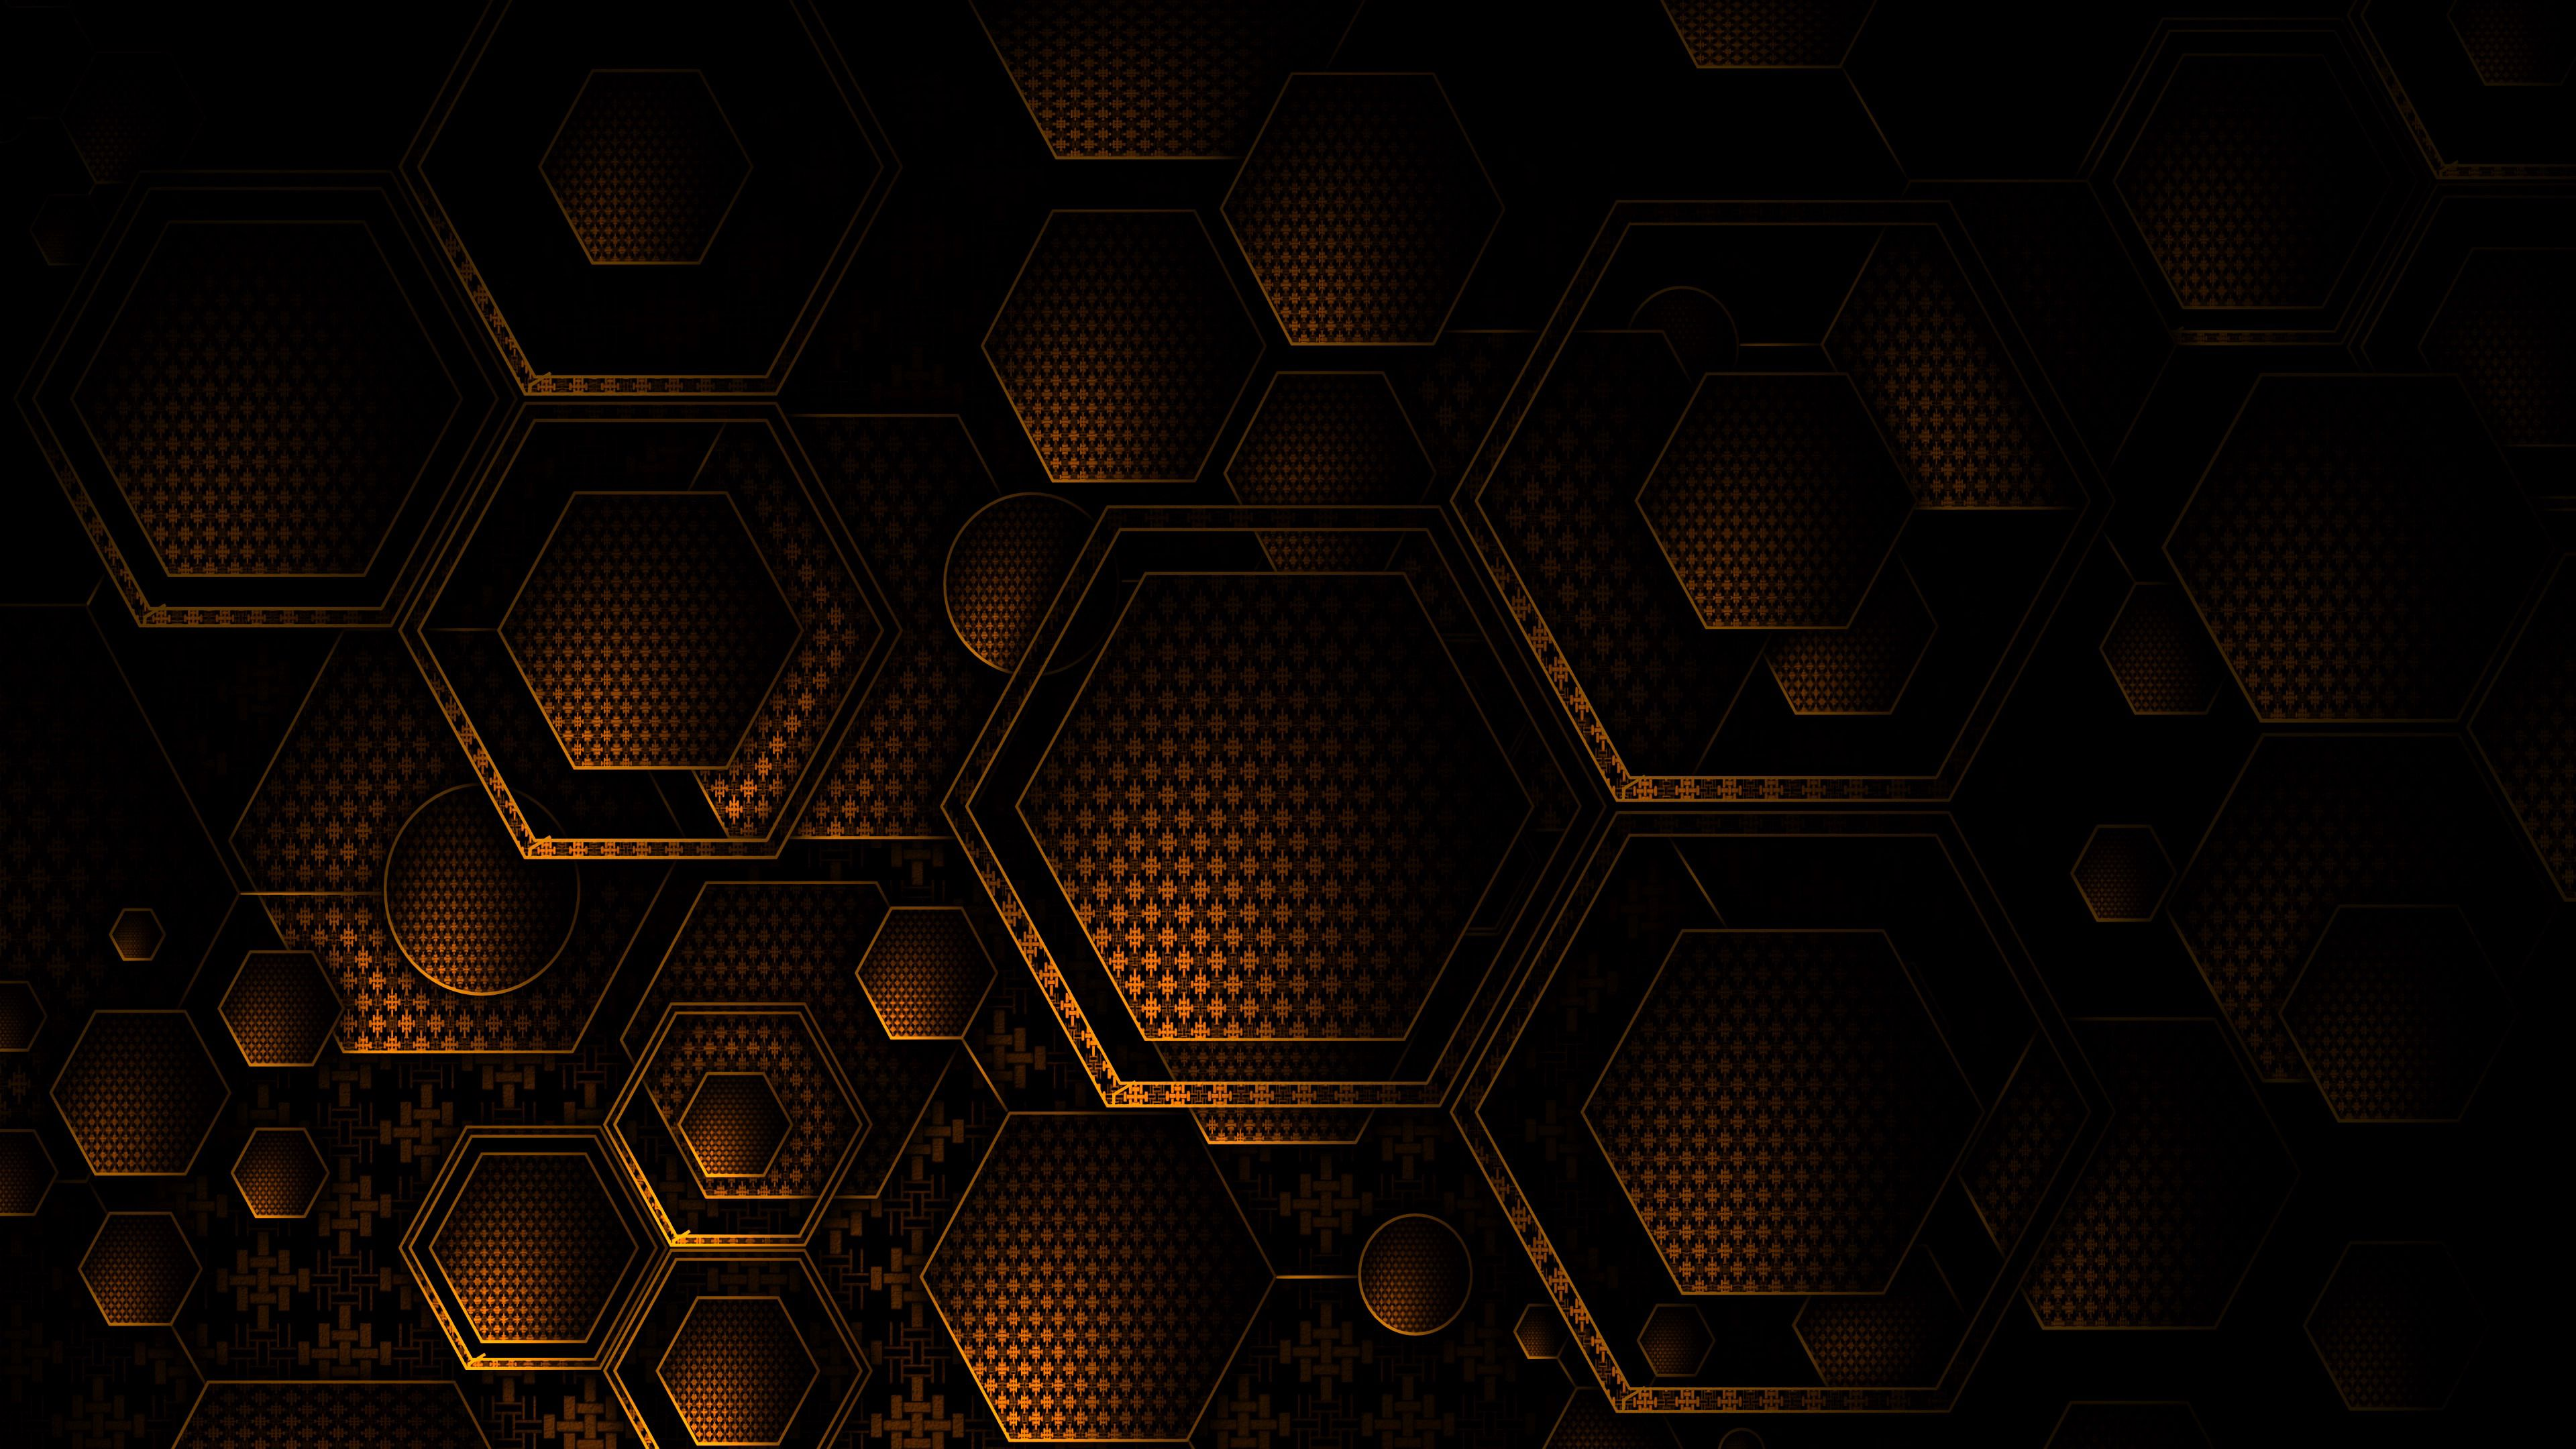 88624 download wallpaper Textures, Dark, Texture, Brown, Hexagons, Geometry screensavers and pictures for free